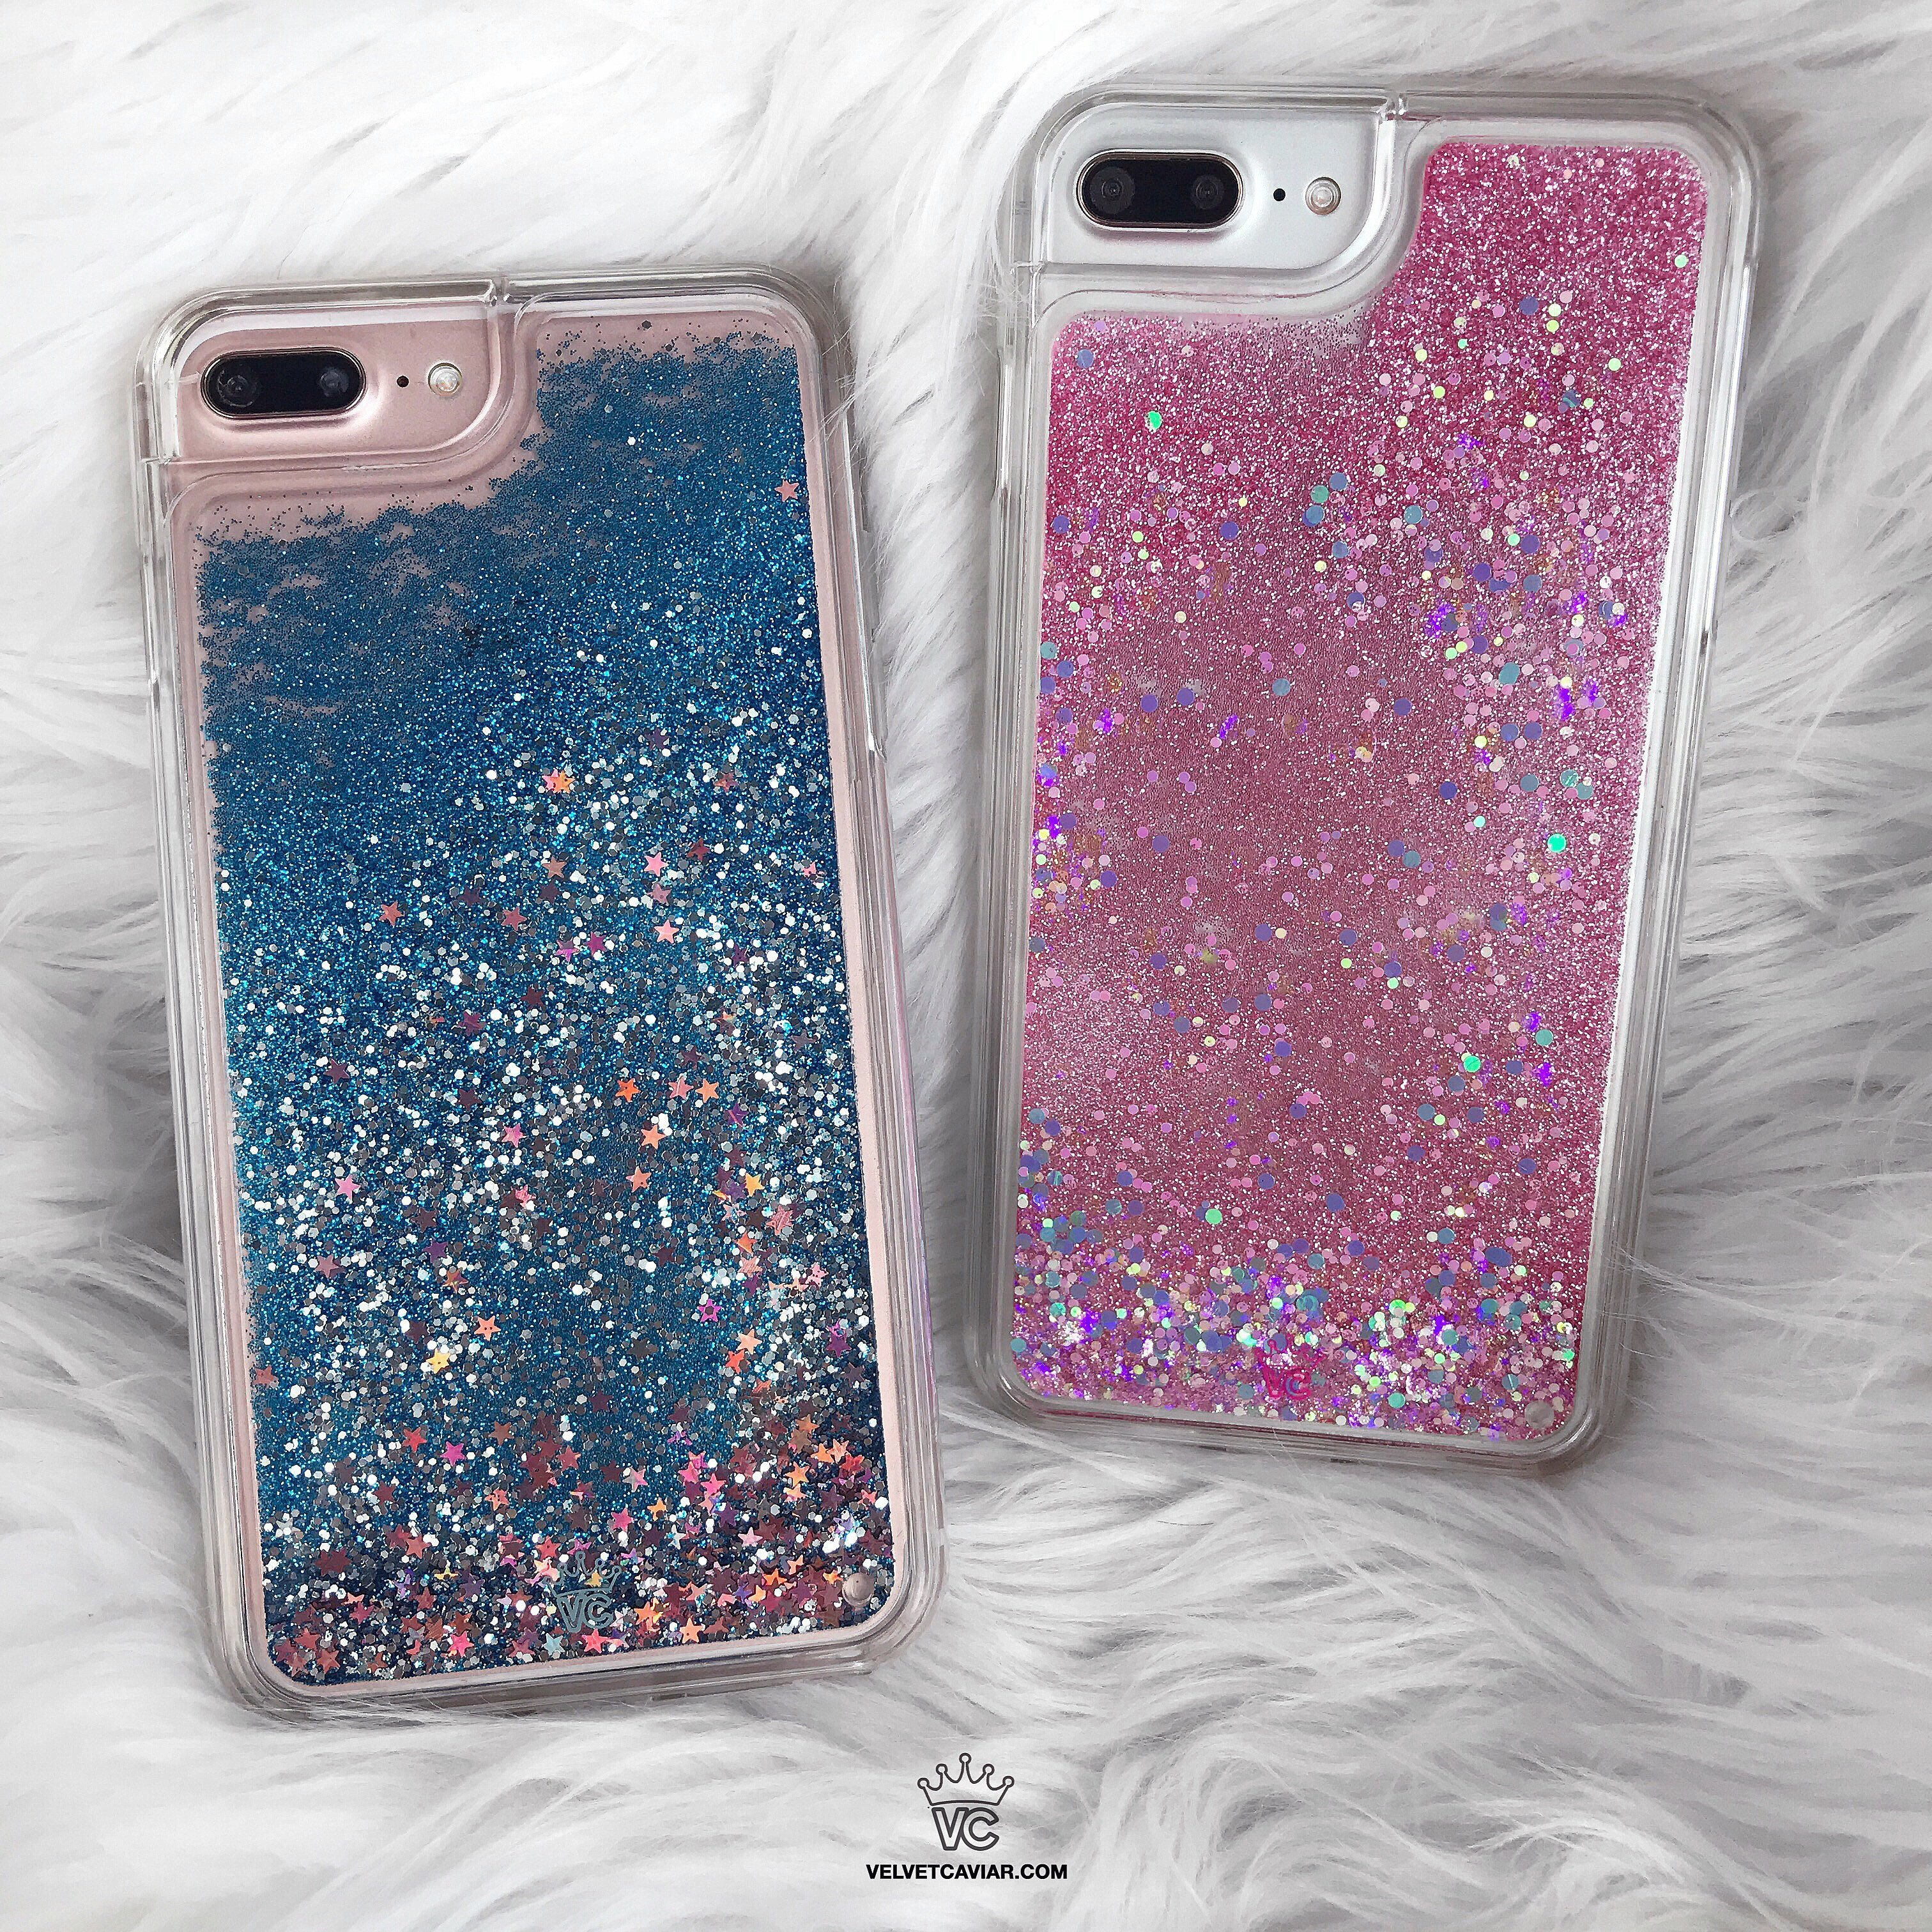 ... STARRY NIGHT GLITTER IPHONE CASE multiple colors 72d47 ae8a0   Holographic Flakes ... 06b82ecb9